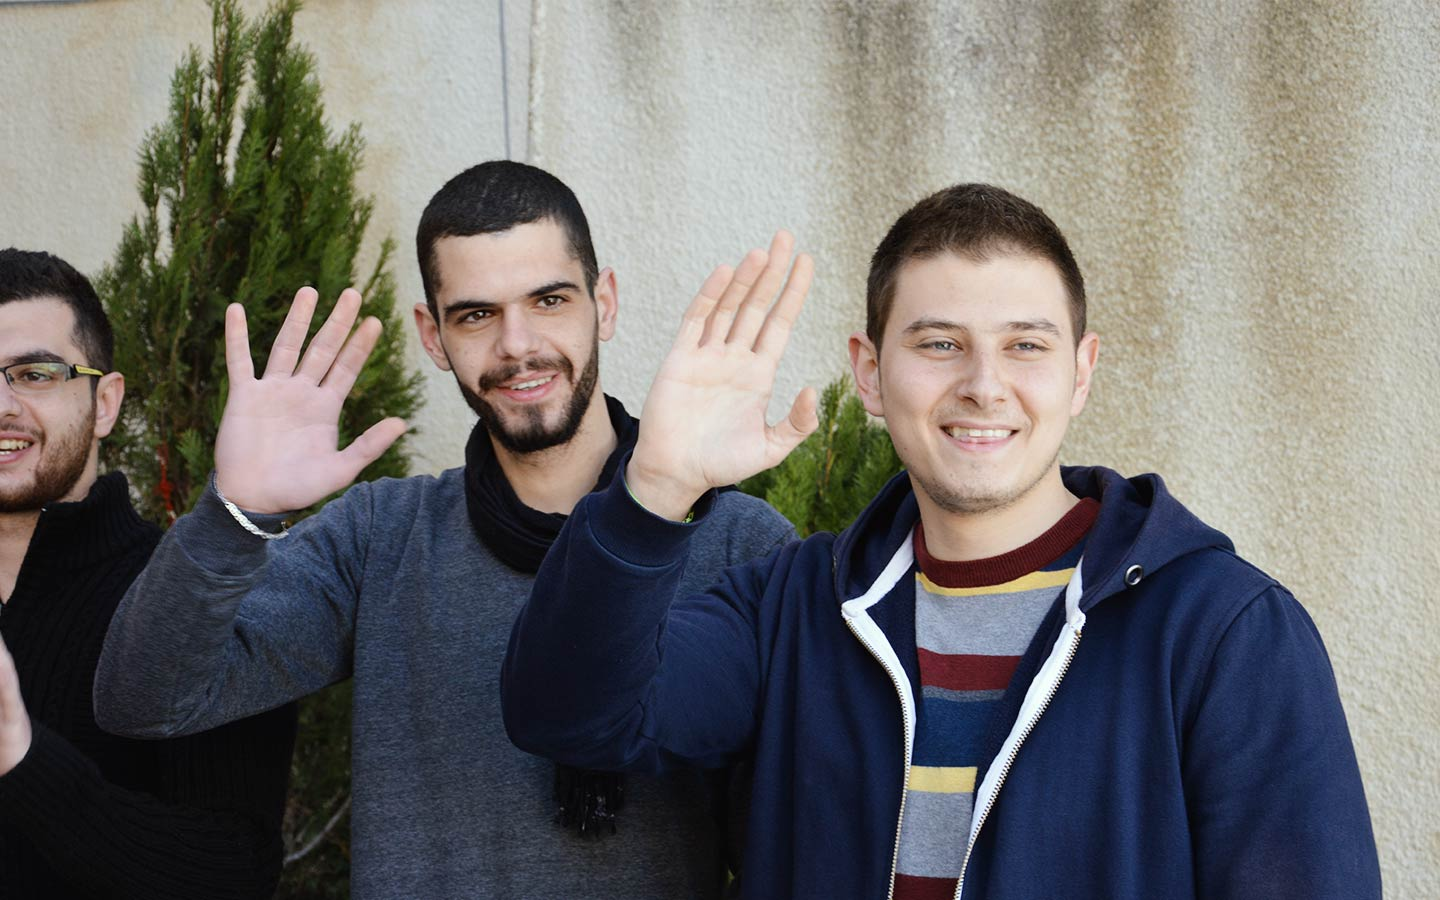 The eleven of Marmarita: young volunteers coordinate aid for 2,000 families displaced by the war in Syria